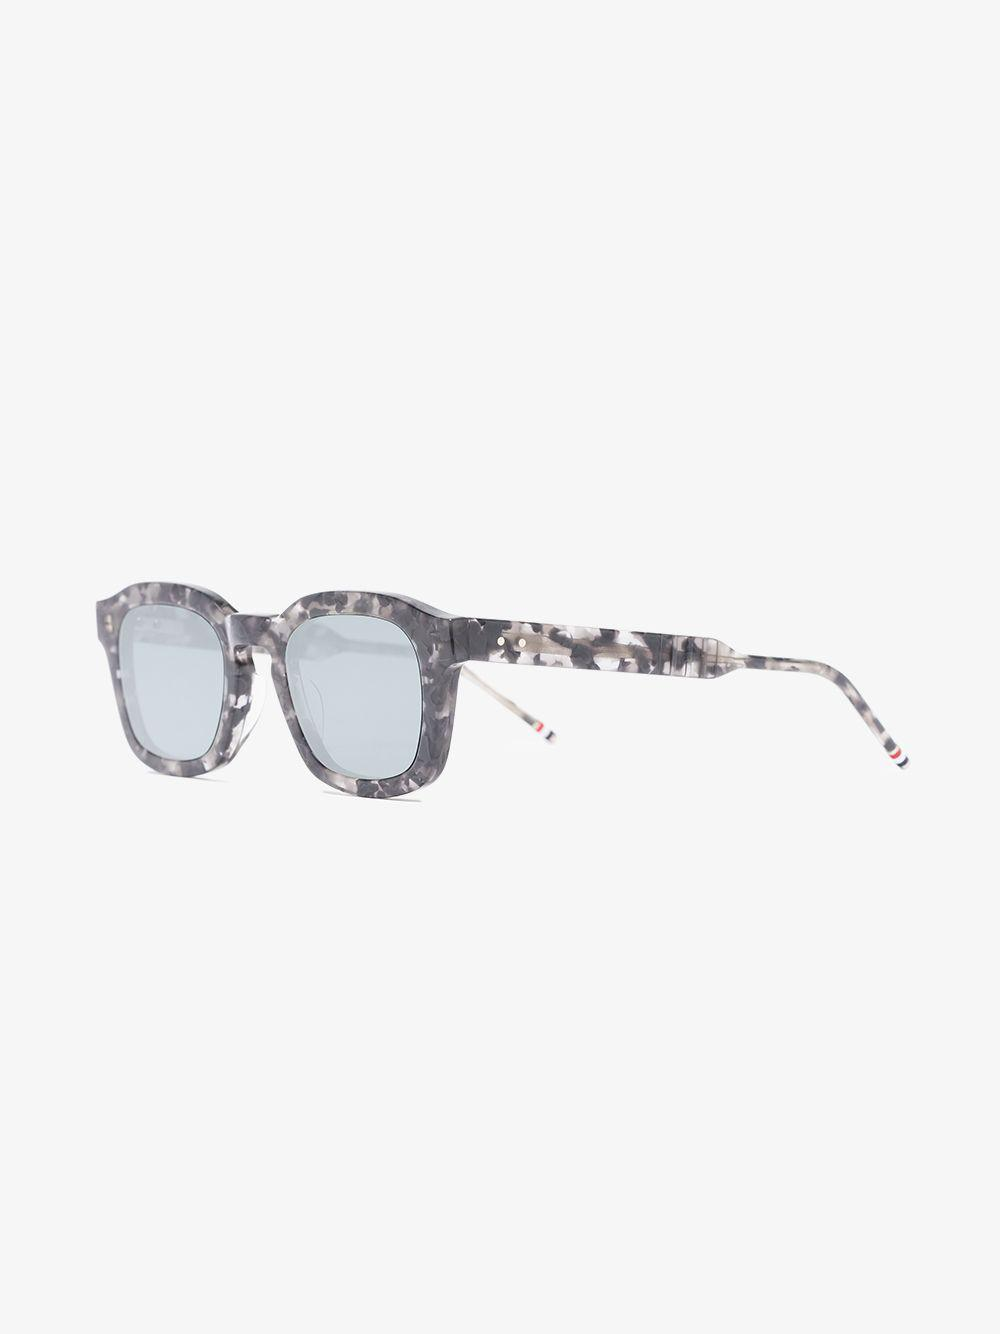 6dfb4dfd7f92 Lyst - Thom Browne Grey And Black Square Frame Sunglasses in Gray for Men